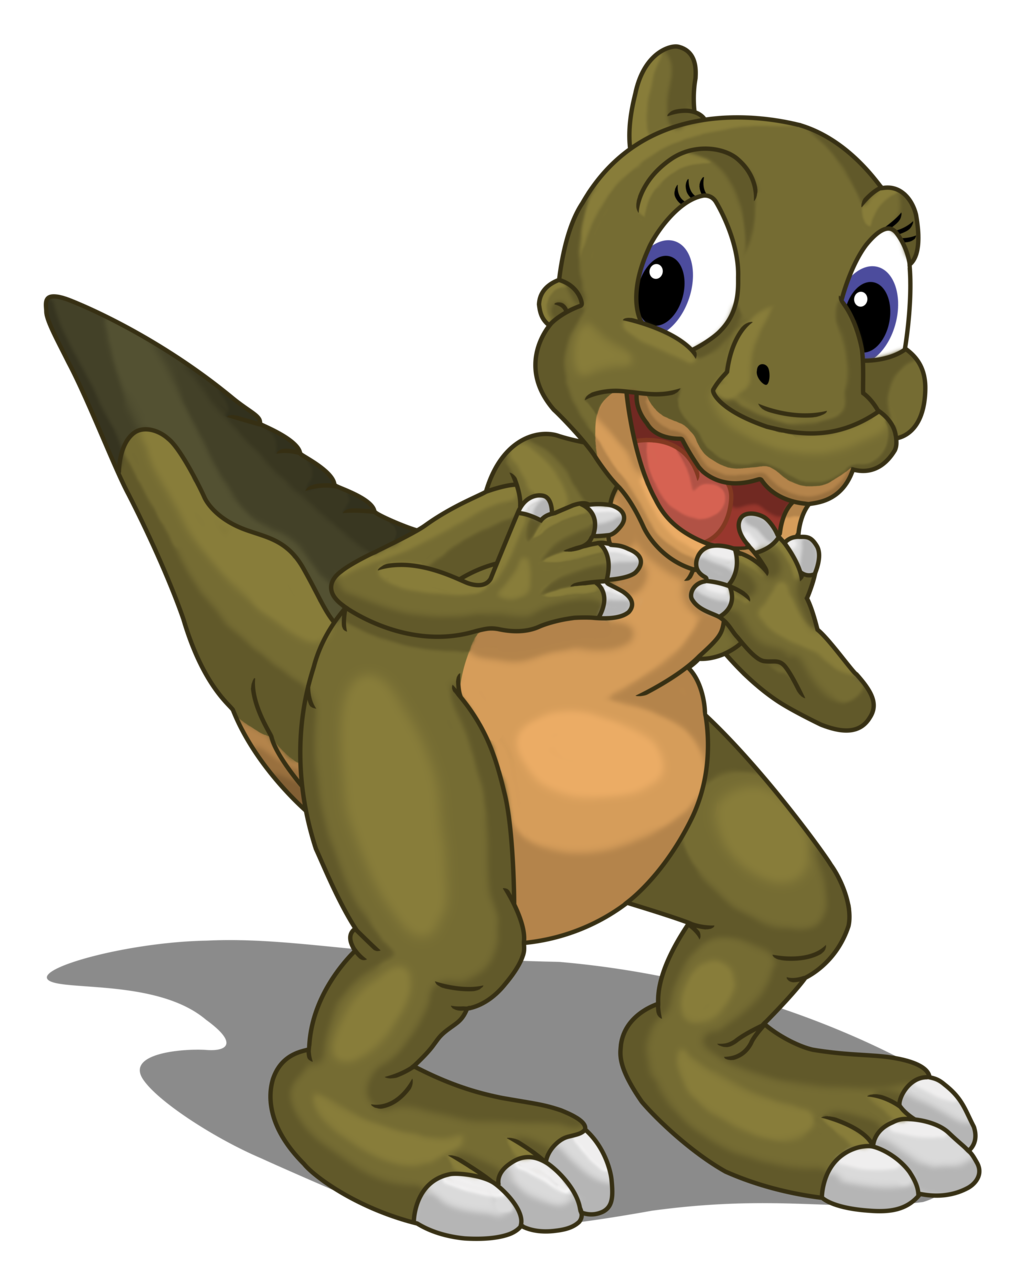 The land before time clipart borders clip art transparent download Ducky dinosaur clipart images gallery for free download ... clip art transparent download